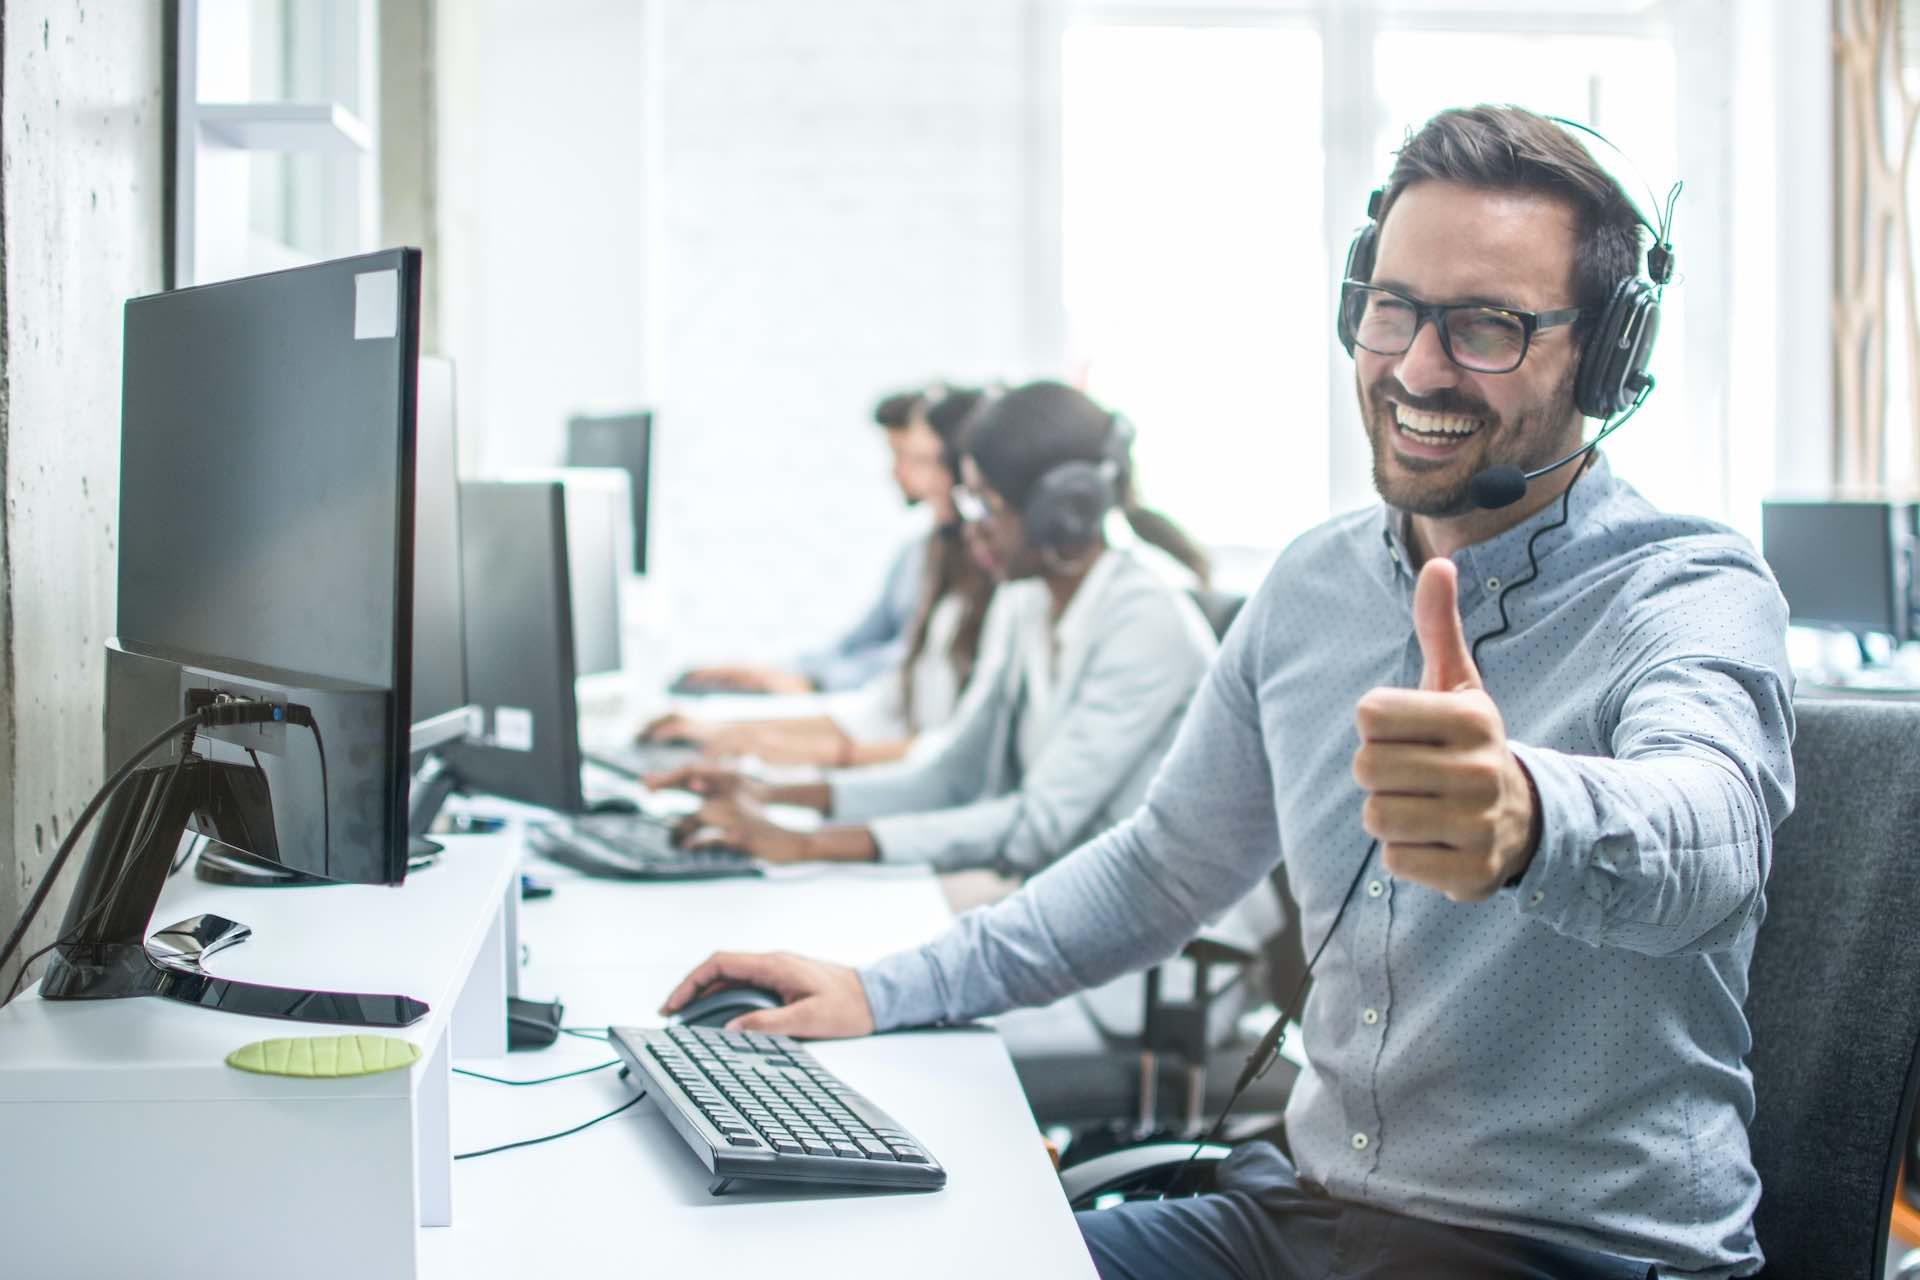 BPO agent by his desk giving the thumbs up